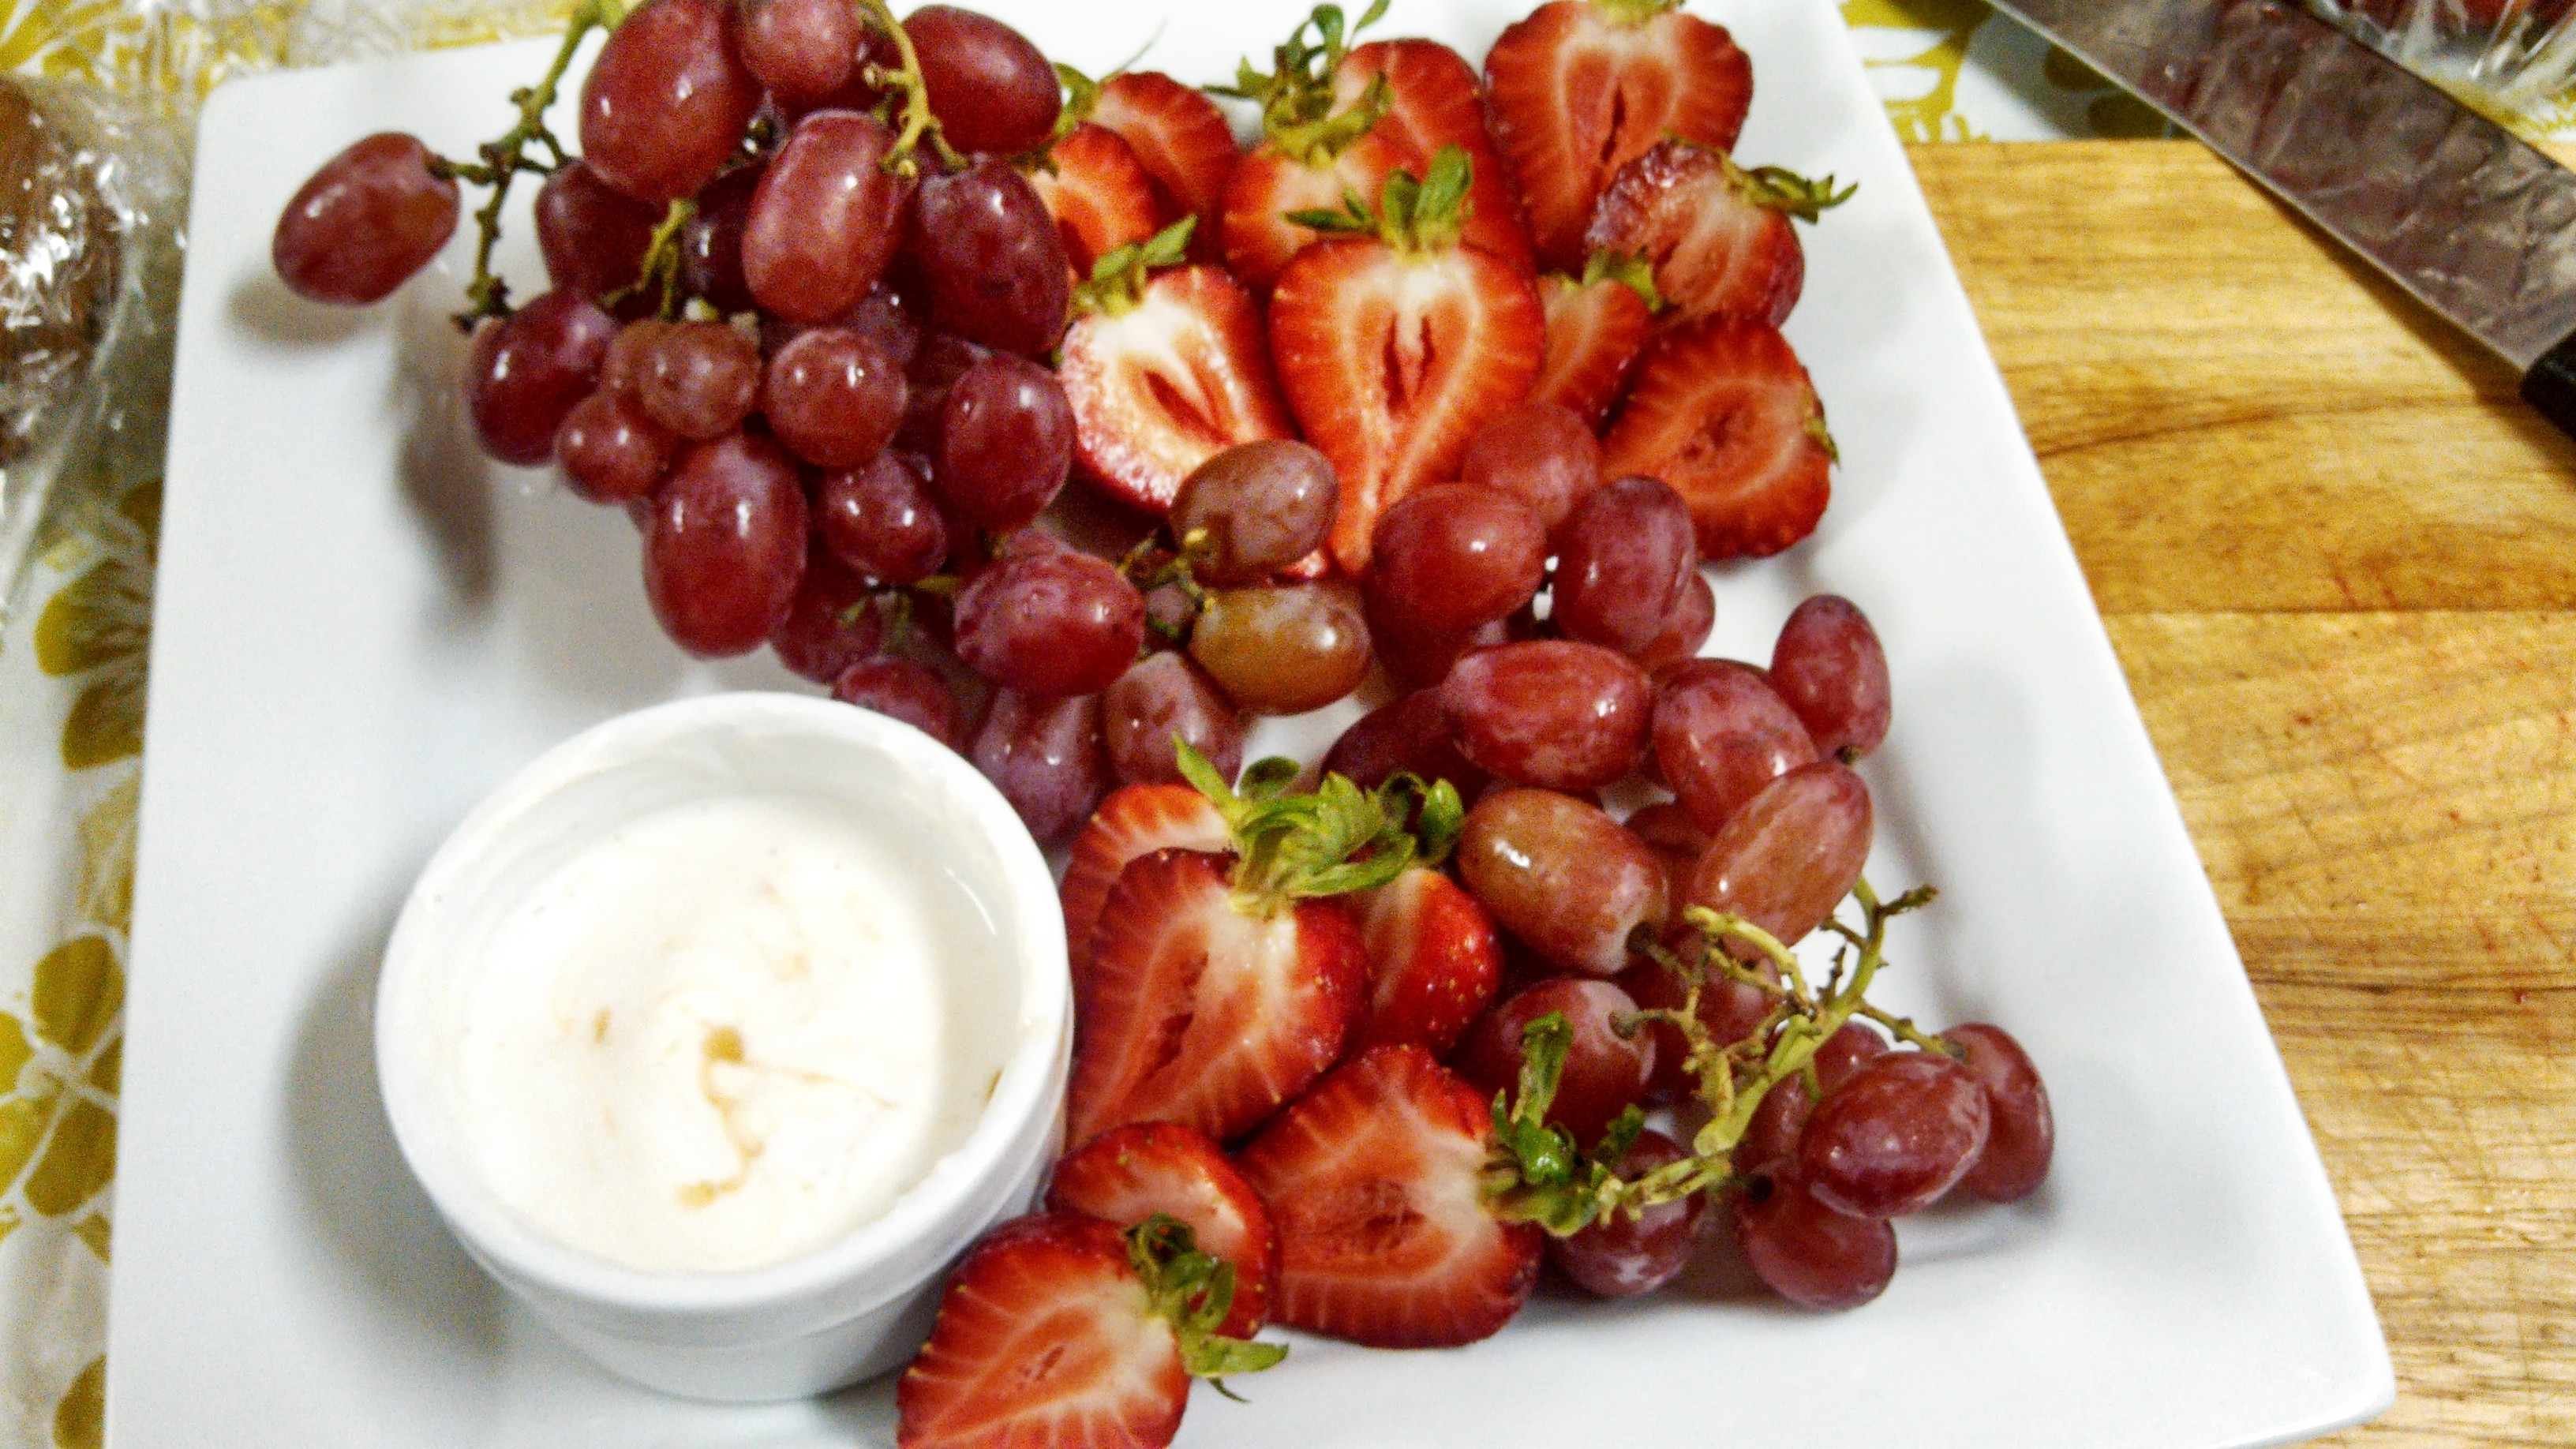 Grapes & Berries w/ Cream Sauce